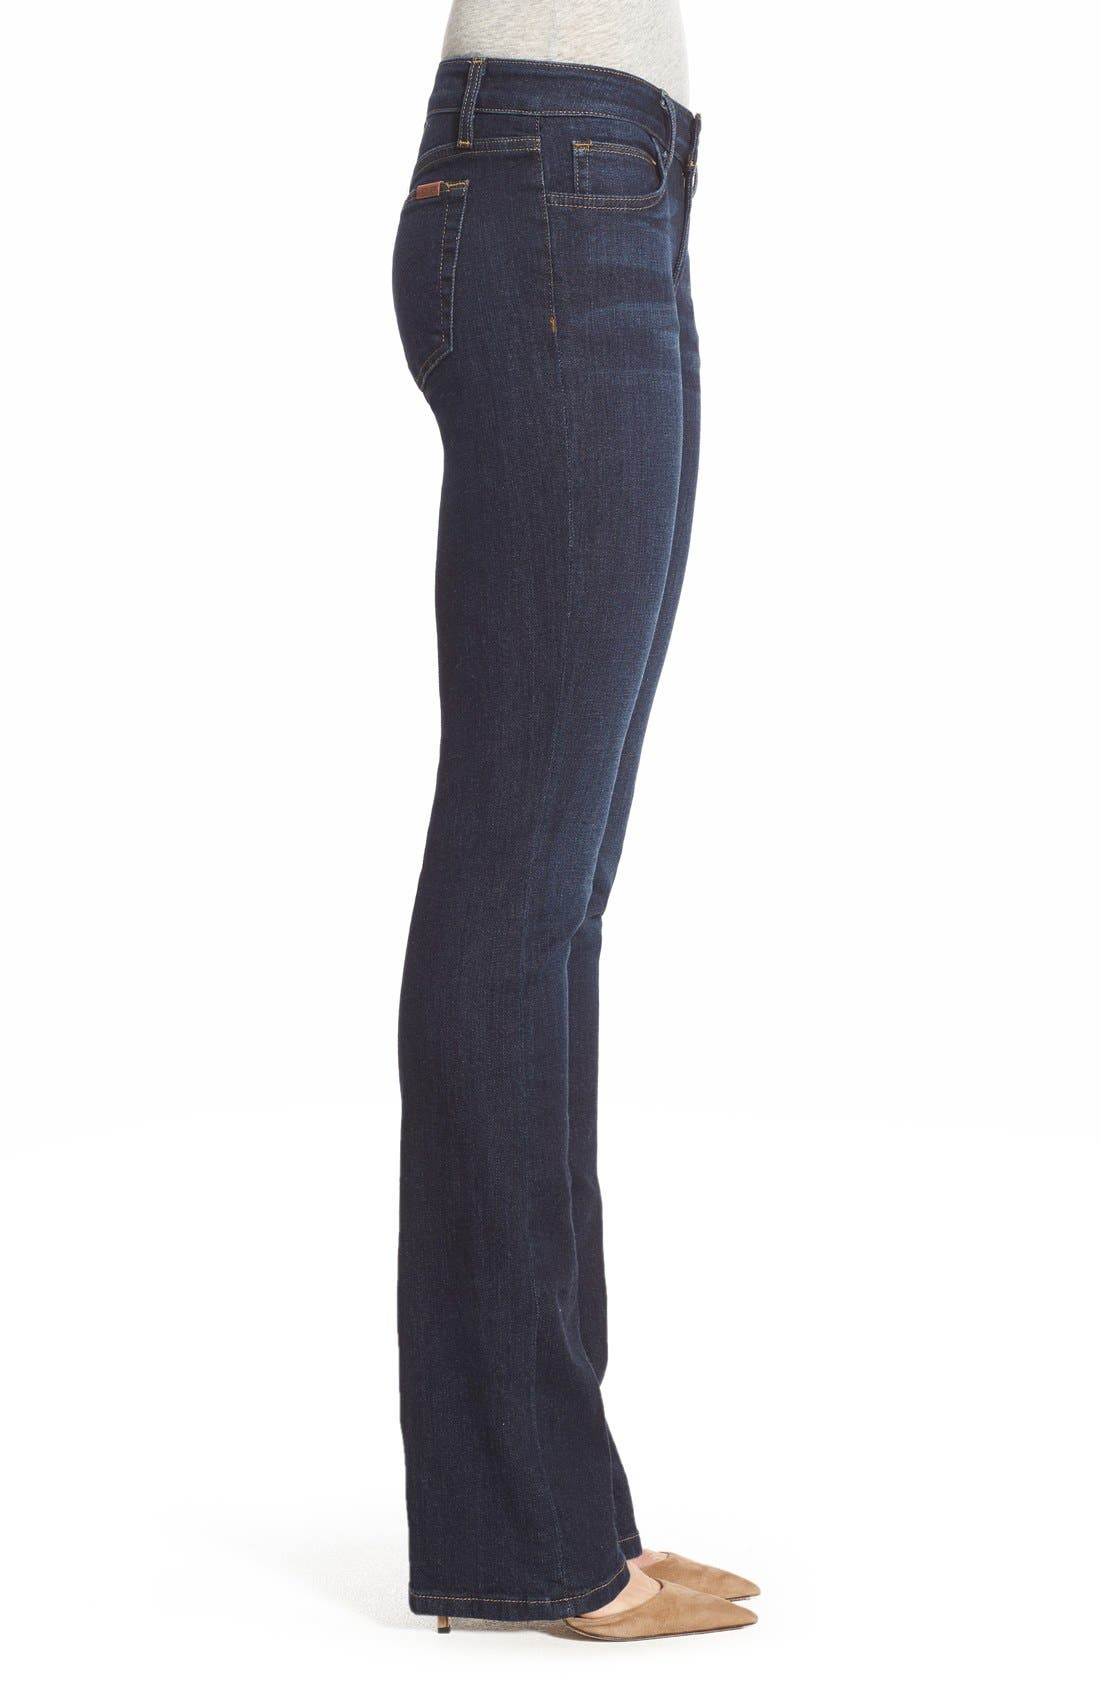 Honey Curvy Bootcut Jeans,                             Alternate thumbnail 3, color,                             RIKKI